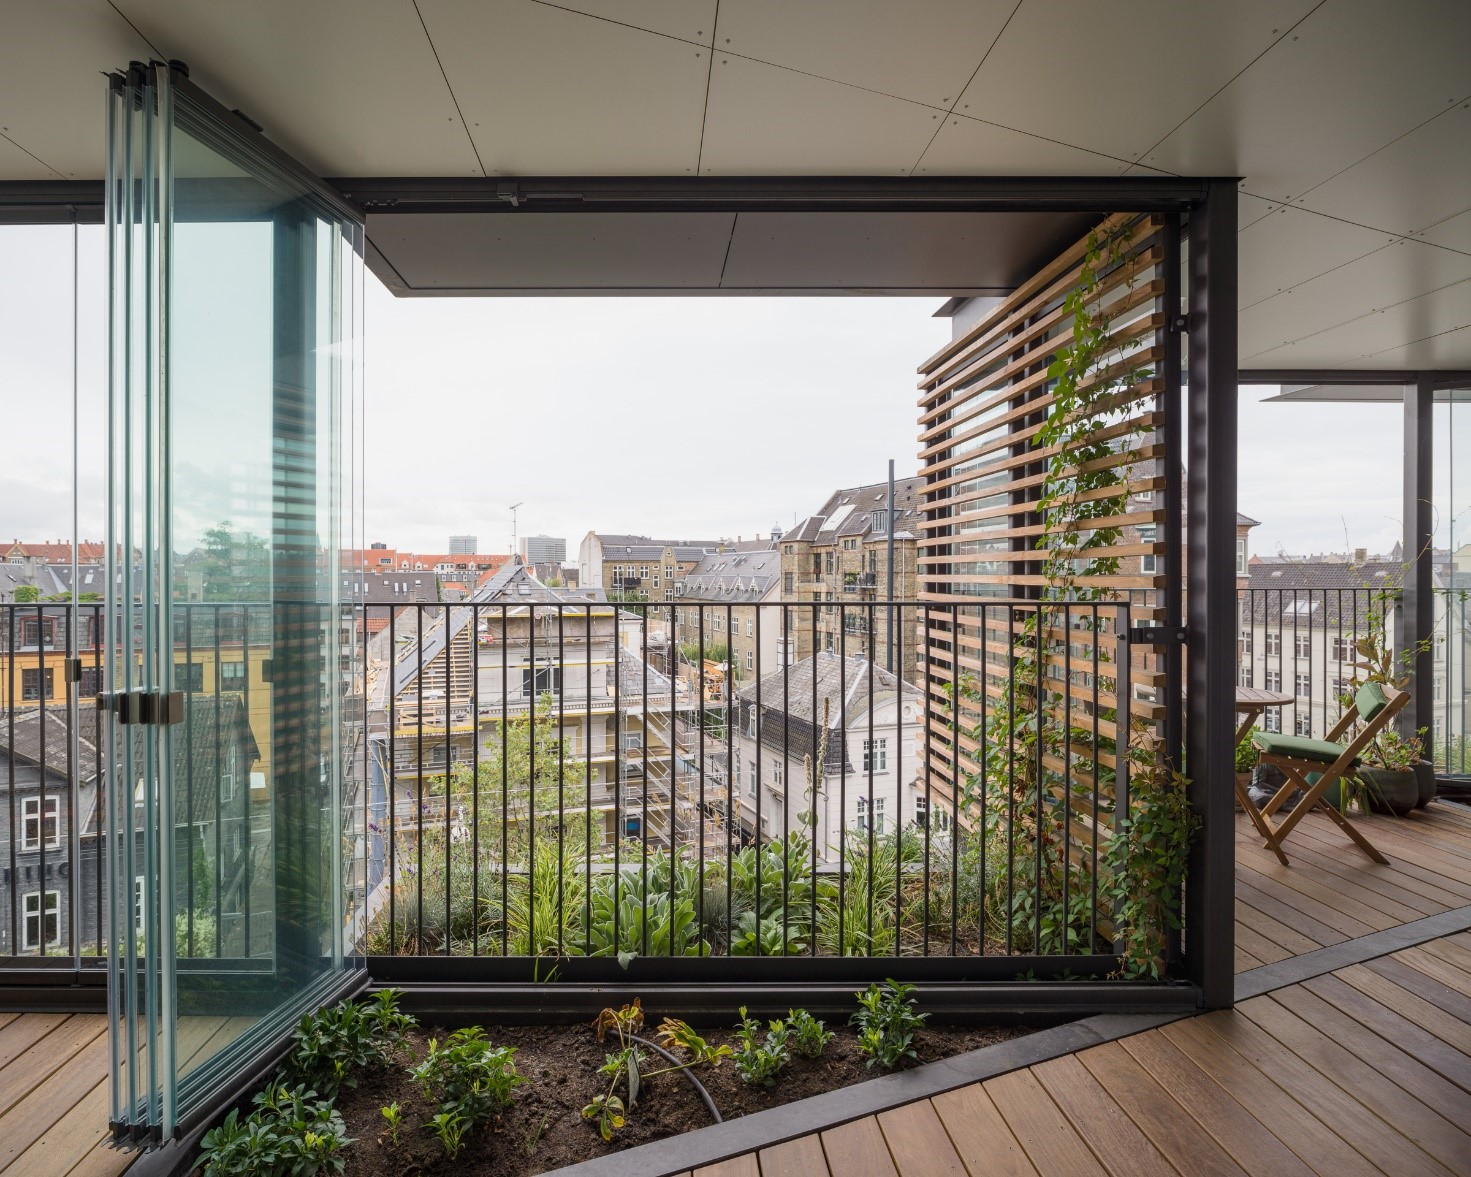 According to the bulletin of renoverin.dk sustainability has been one of the corner stones in the renovation project of Ørsted's Gardens. Lumon products fit to the mentality more than well as the impact of Lumon Glazing on the environment is net positive. Therefore, we can say that Lumon Glazing is an environmentally friendly solution.